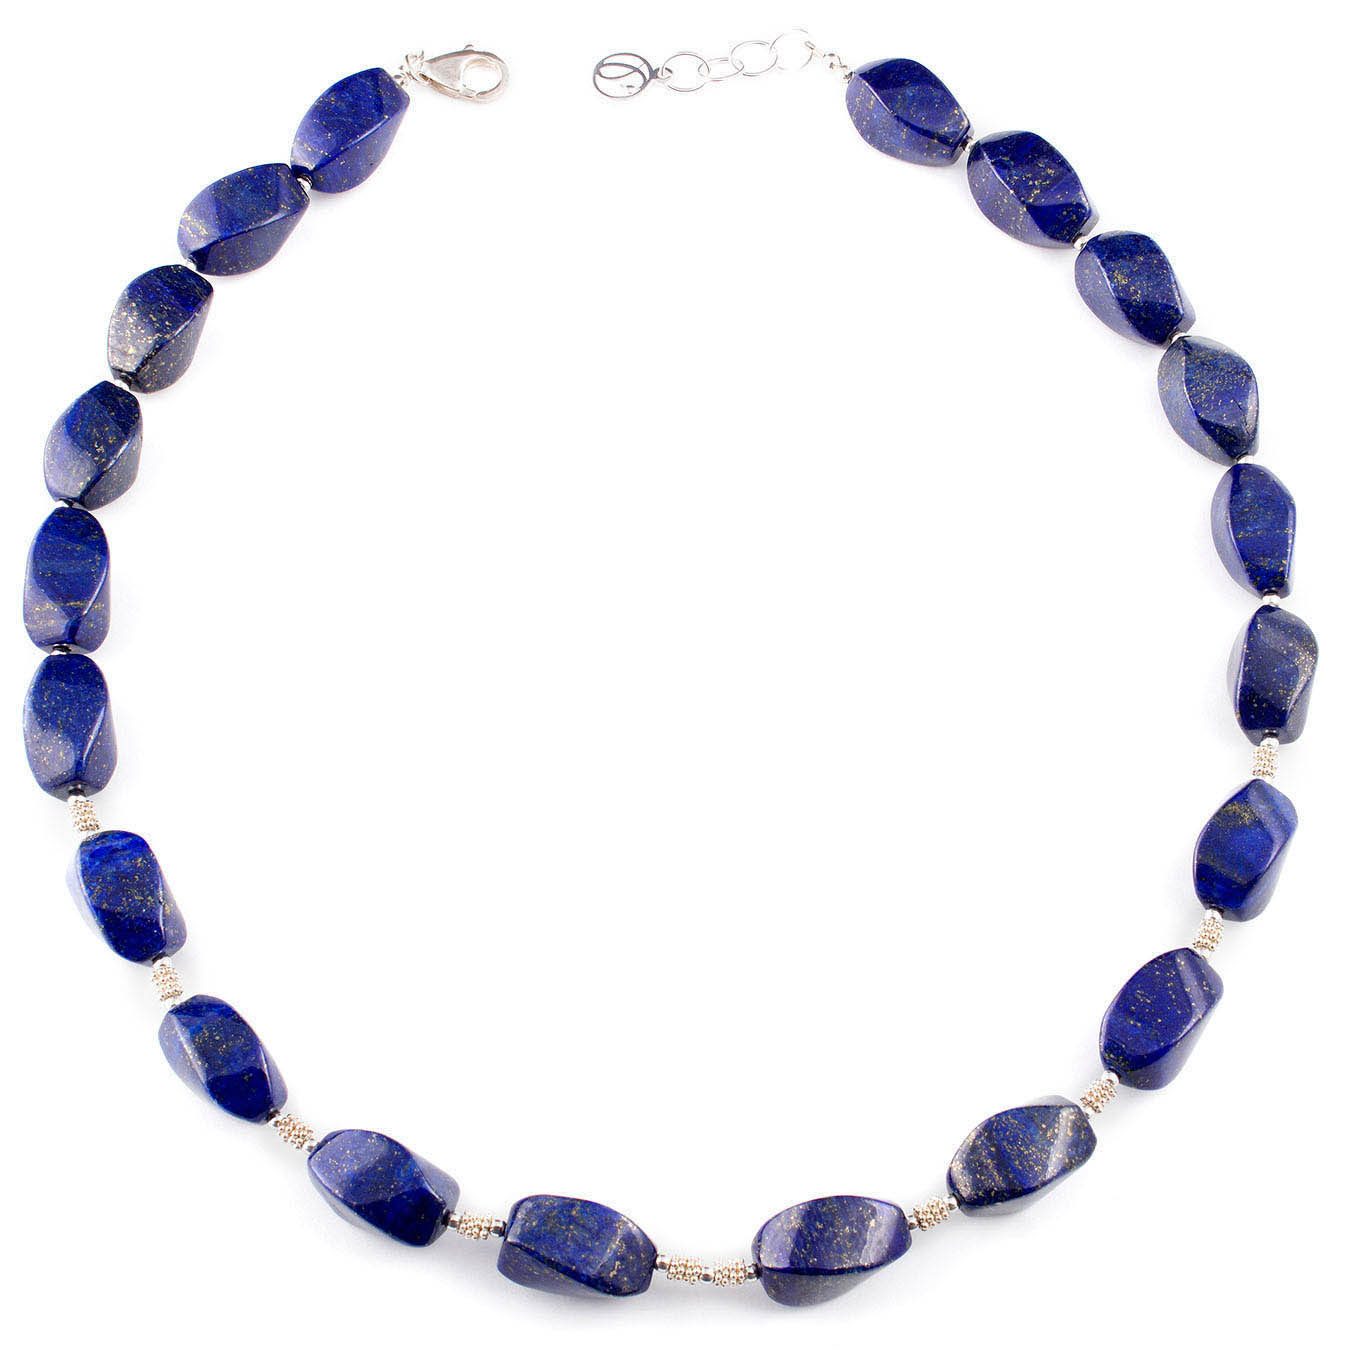 Handmade stone jewelry necklace made of lapis lazuli and silver beads